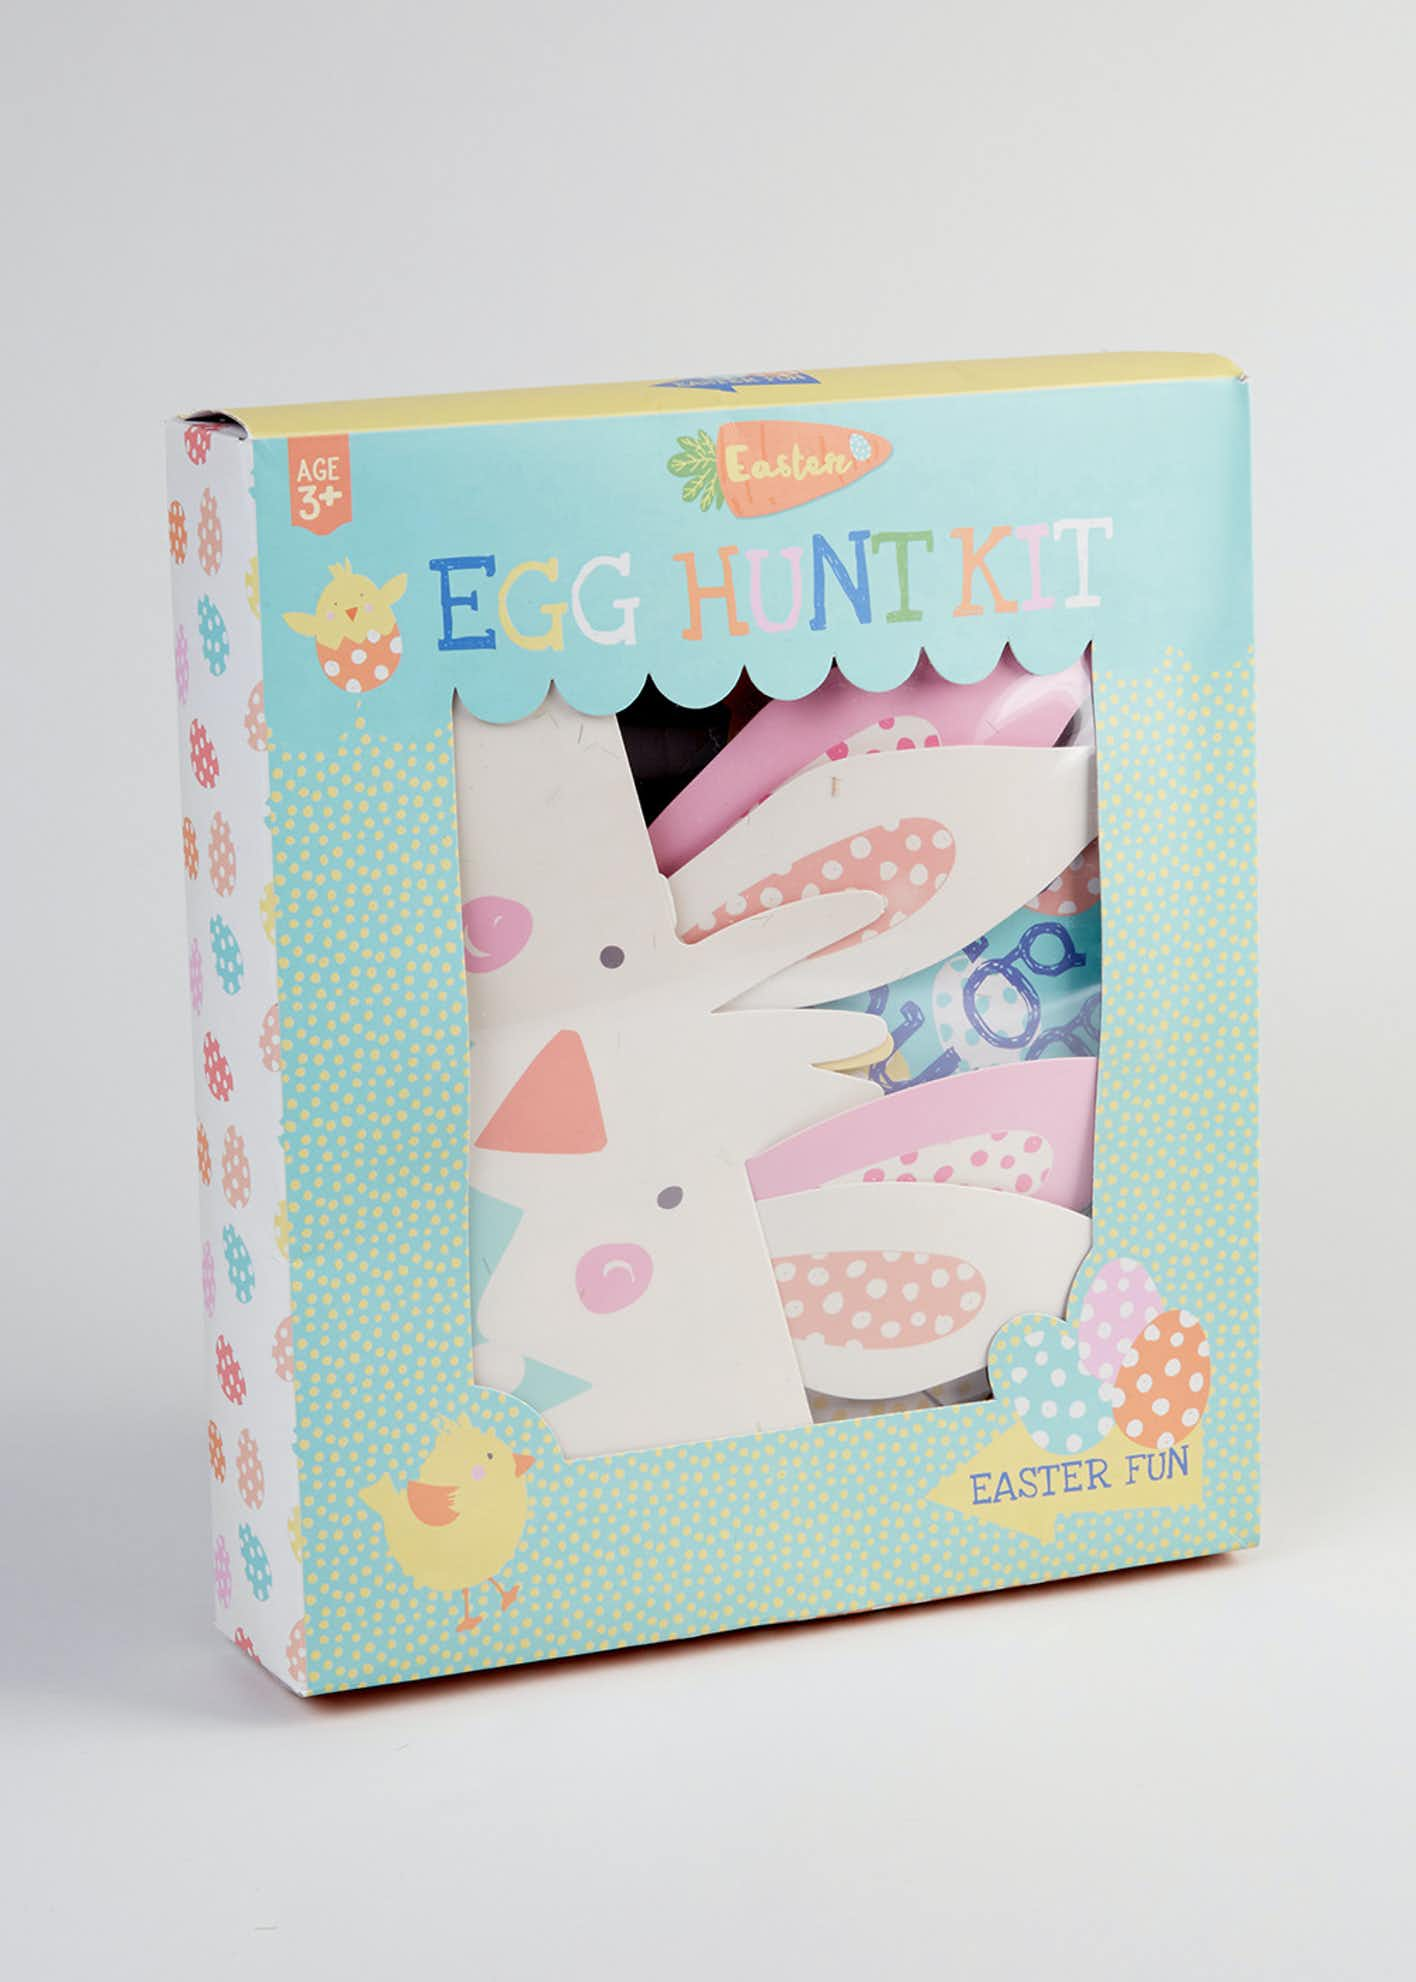 Easter Egg Hunt Kit (27cm x 23cm x 5cm)